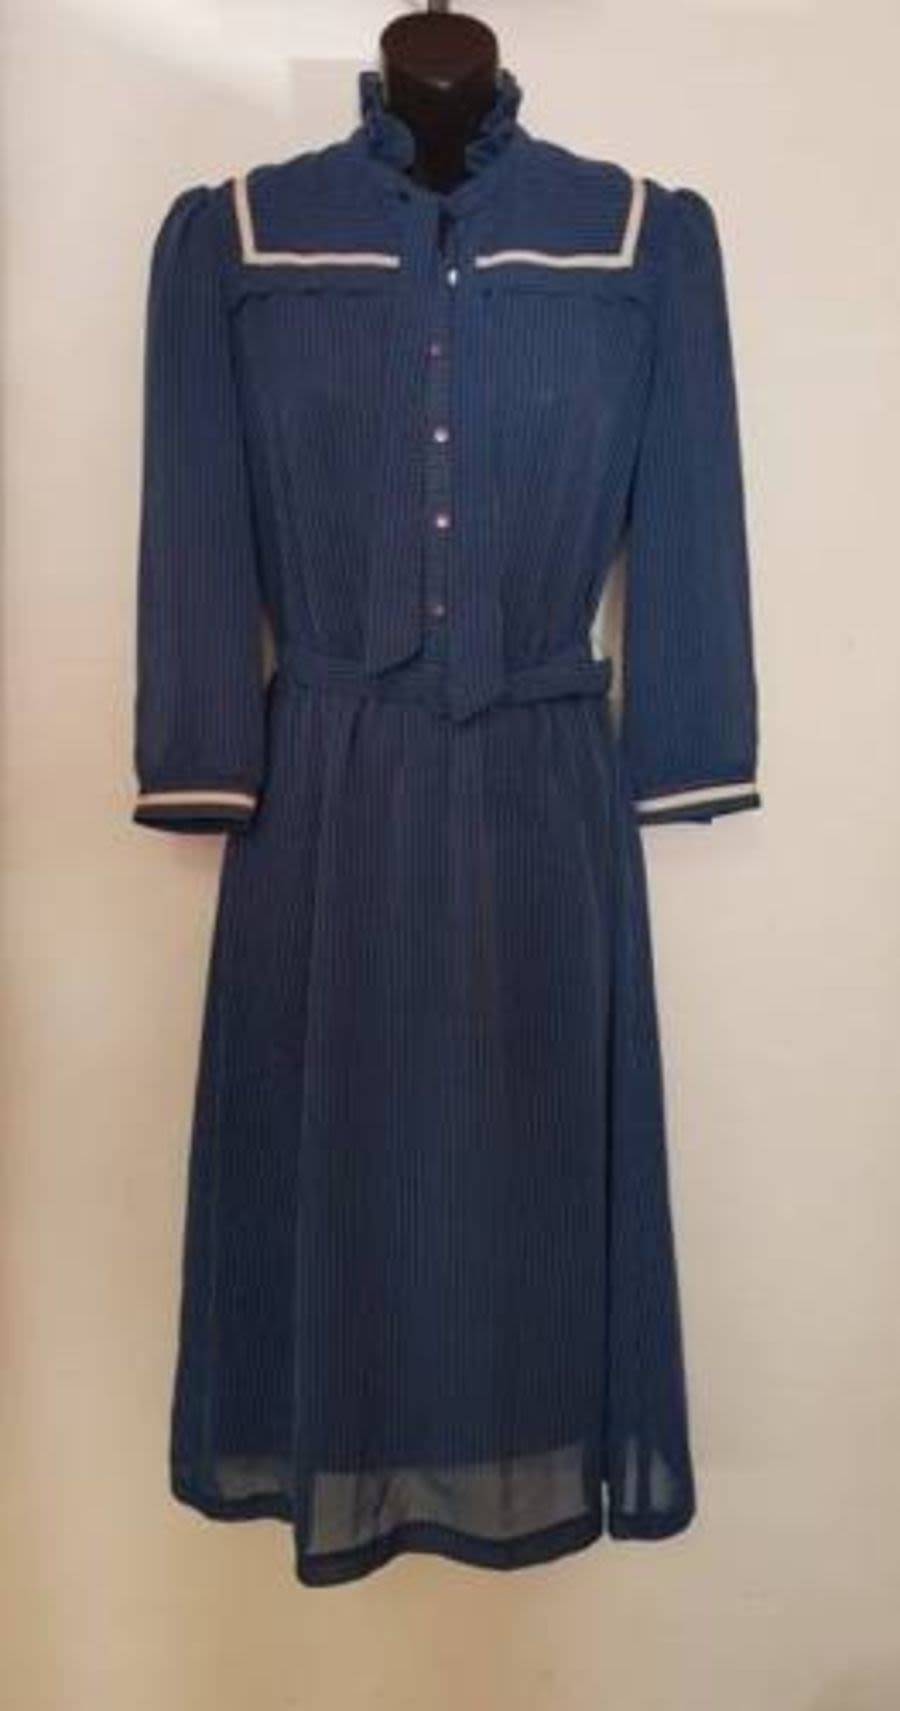 Vintage Womens 1970's Blue Pinstriped Dress